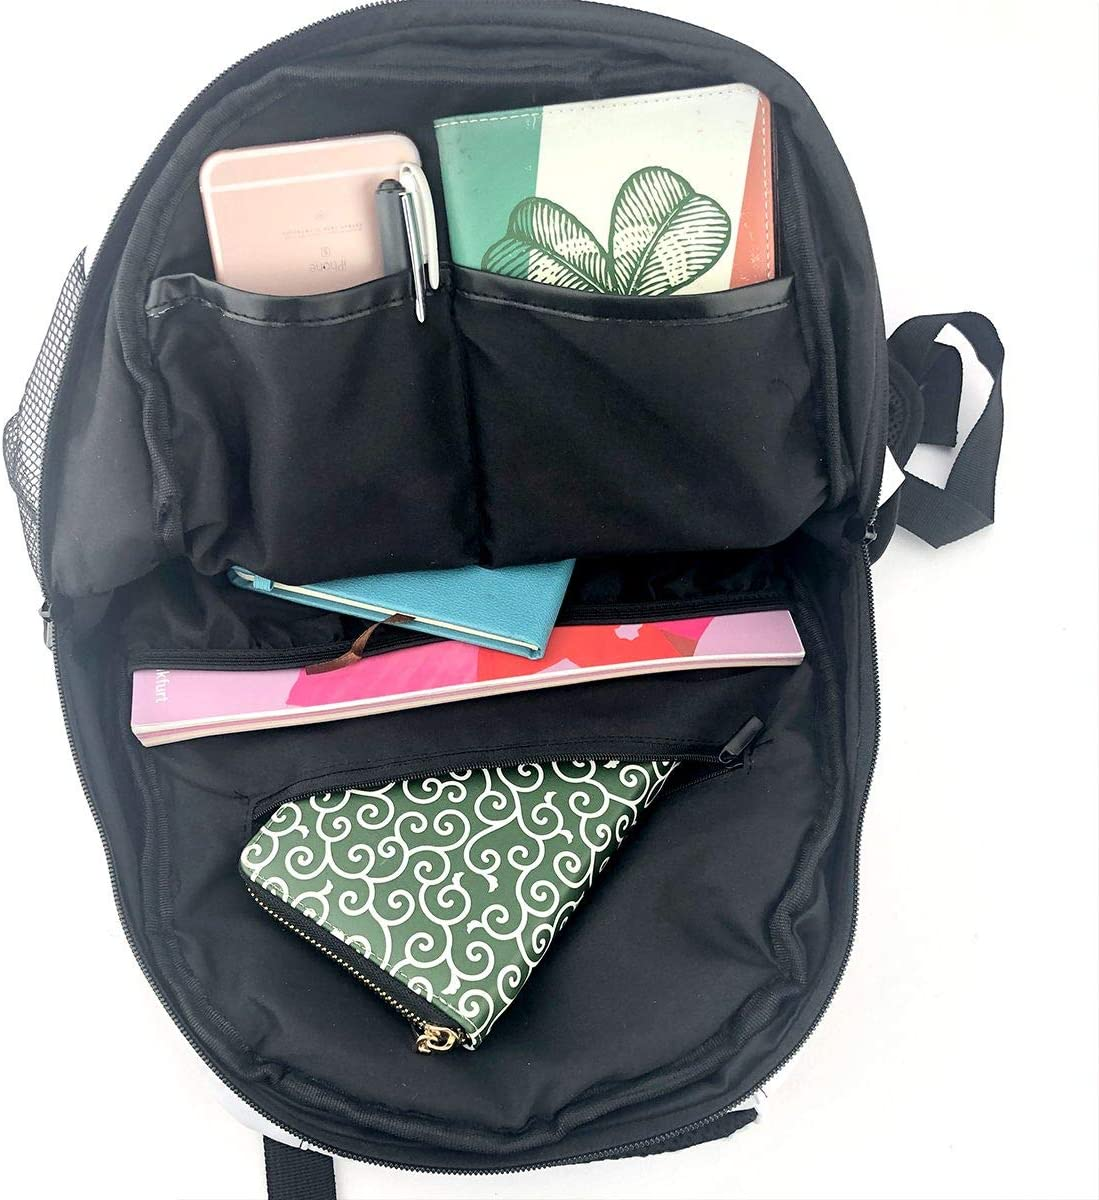 Black Butterfly Printed Graphic Backpack Novelty Schoolbag For Boys Girls